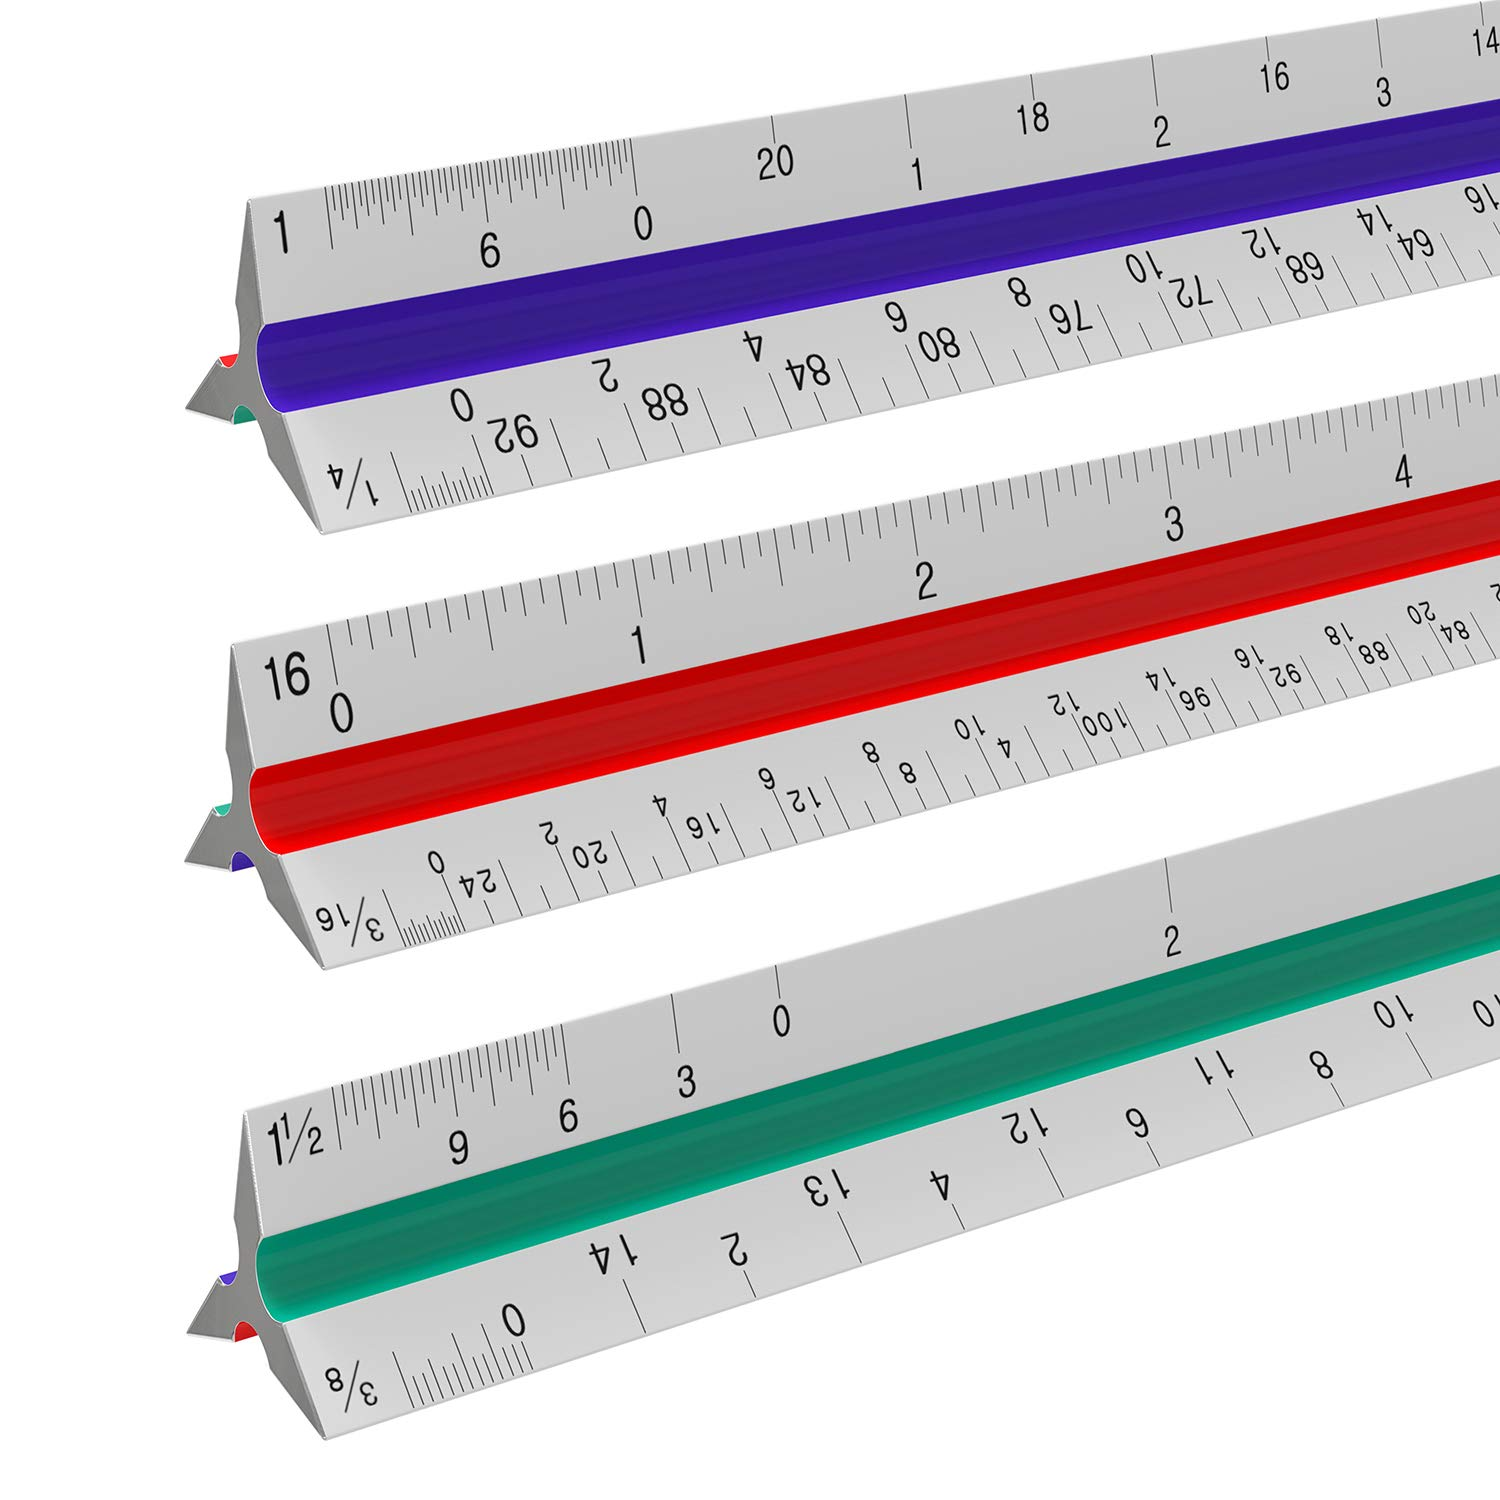 Architectural Scale Ruler - 12'' Aluminum Triangular Architect Scale Ruler for Engineering Scale, Drafting Ruler, Metal Scale Ruler, Blueprint - with Imperial Measurements